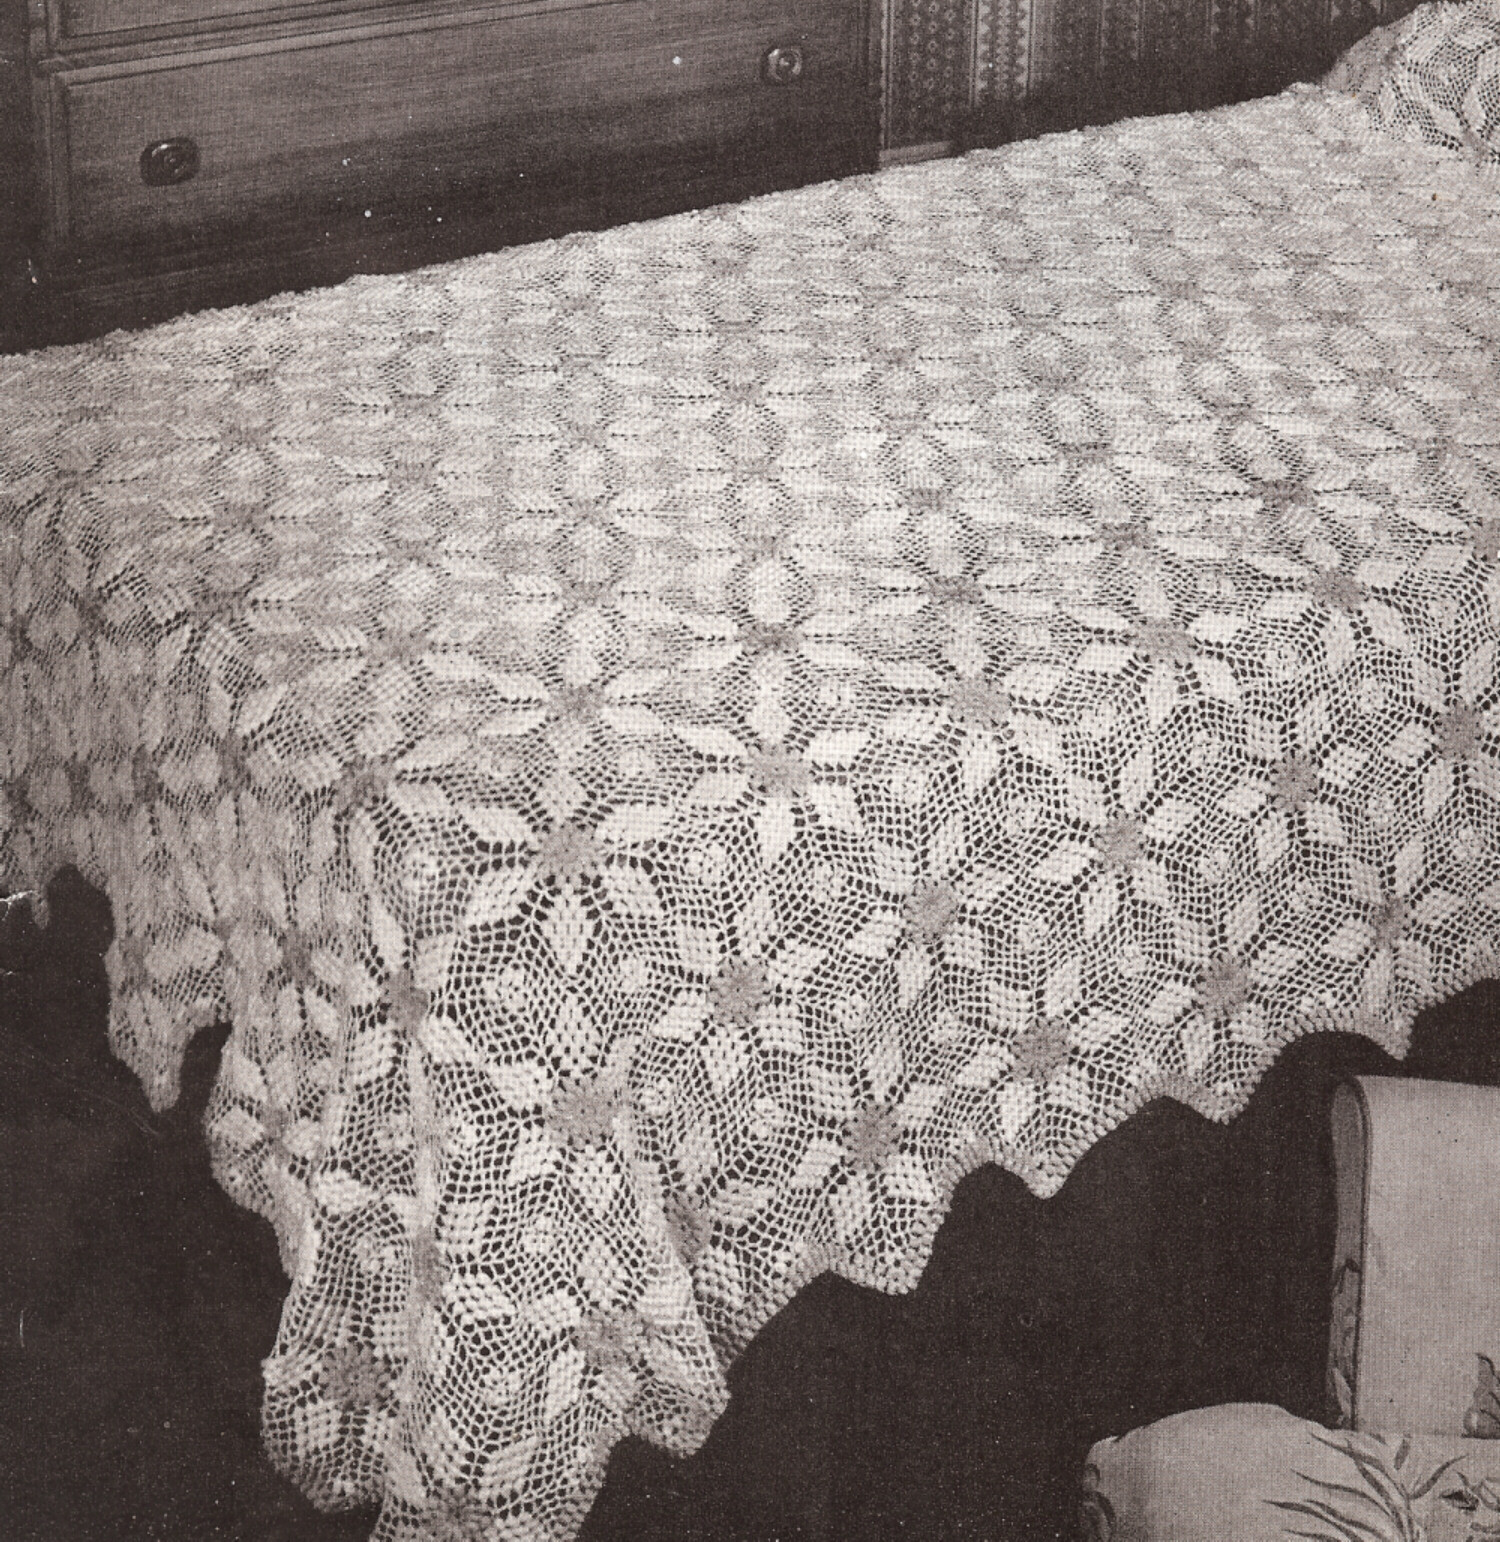 Free Vintage Crochet Lovely Vintage Crochet Bedspread Patterns Of Amazing 50 Images Free Vintage Crochet